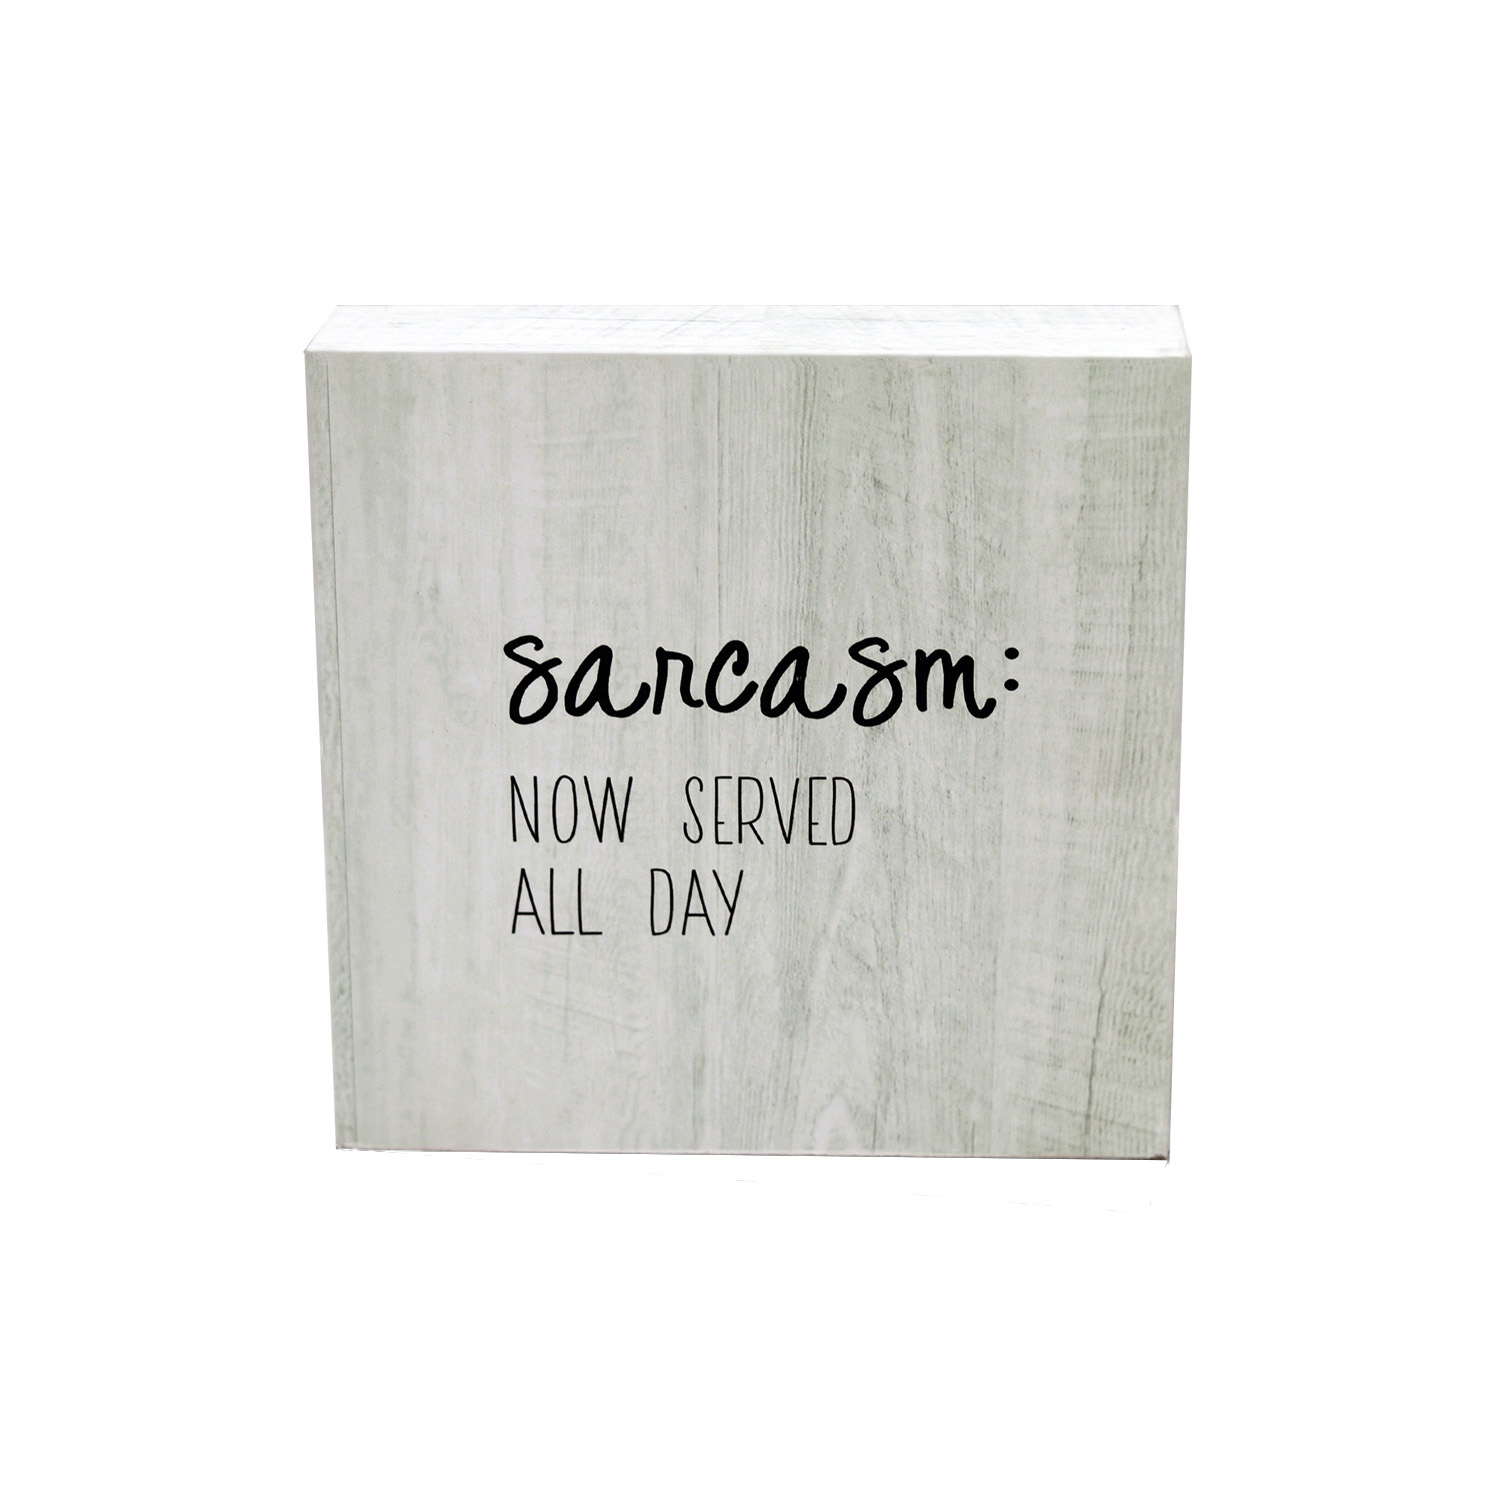 Parisloft Sarcasm Now Served All Day Wood Block Signs Rustic Freestanding Wood Home Decorations For Living Room 5 9 X5 9 Walmart Com Walmart Com